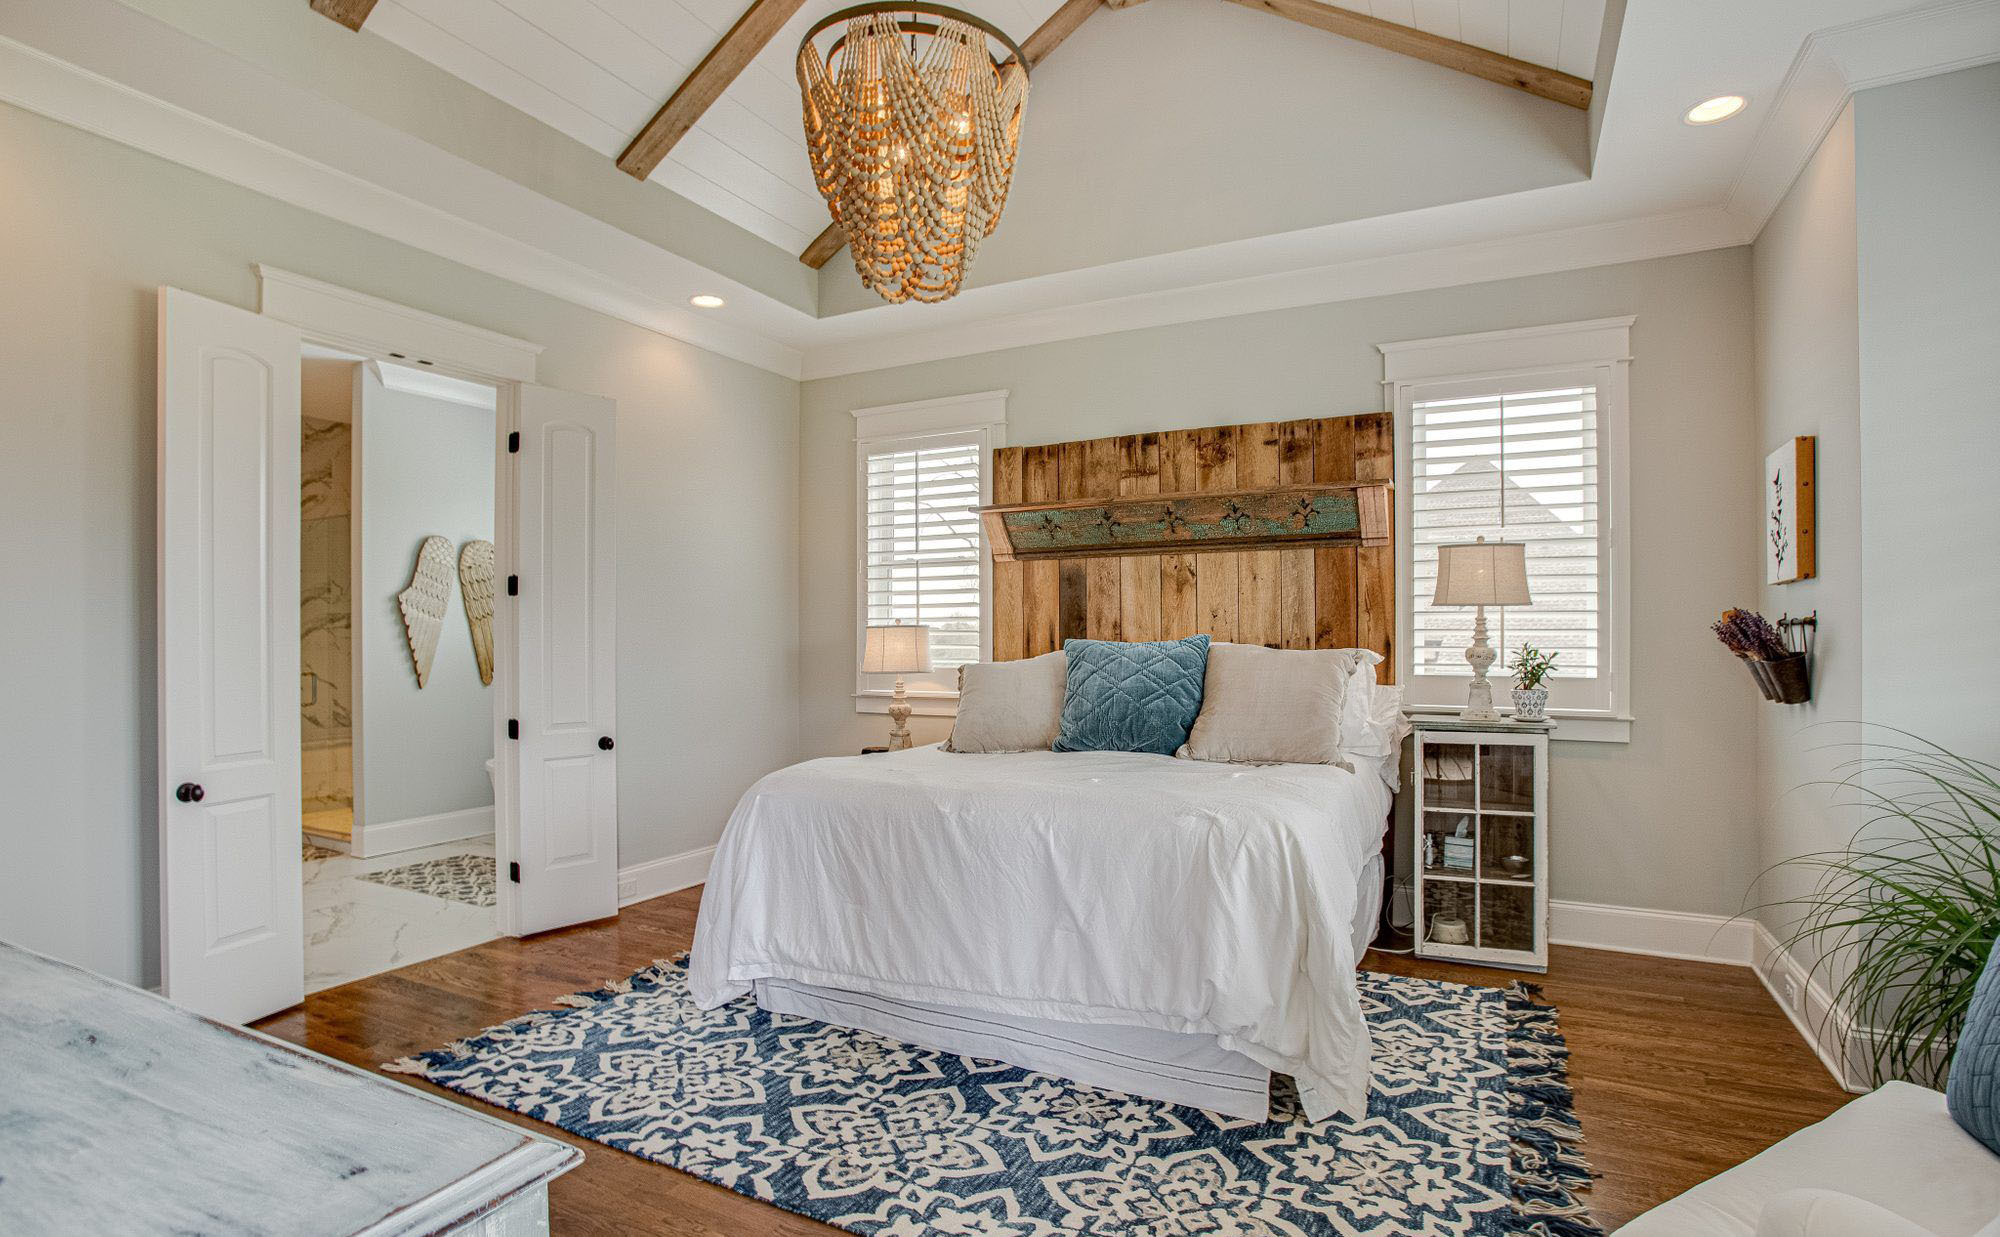 Bedroom vaulted ceilings with exposed timber beams and shiplap.